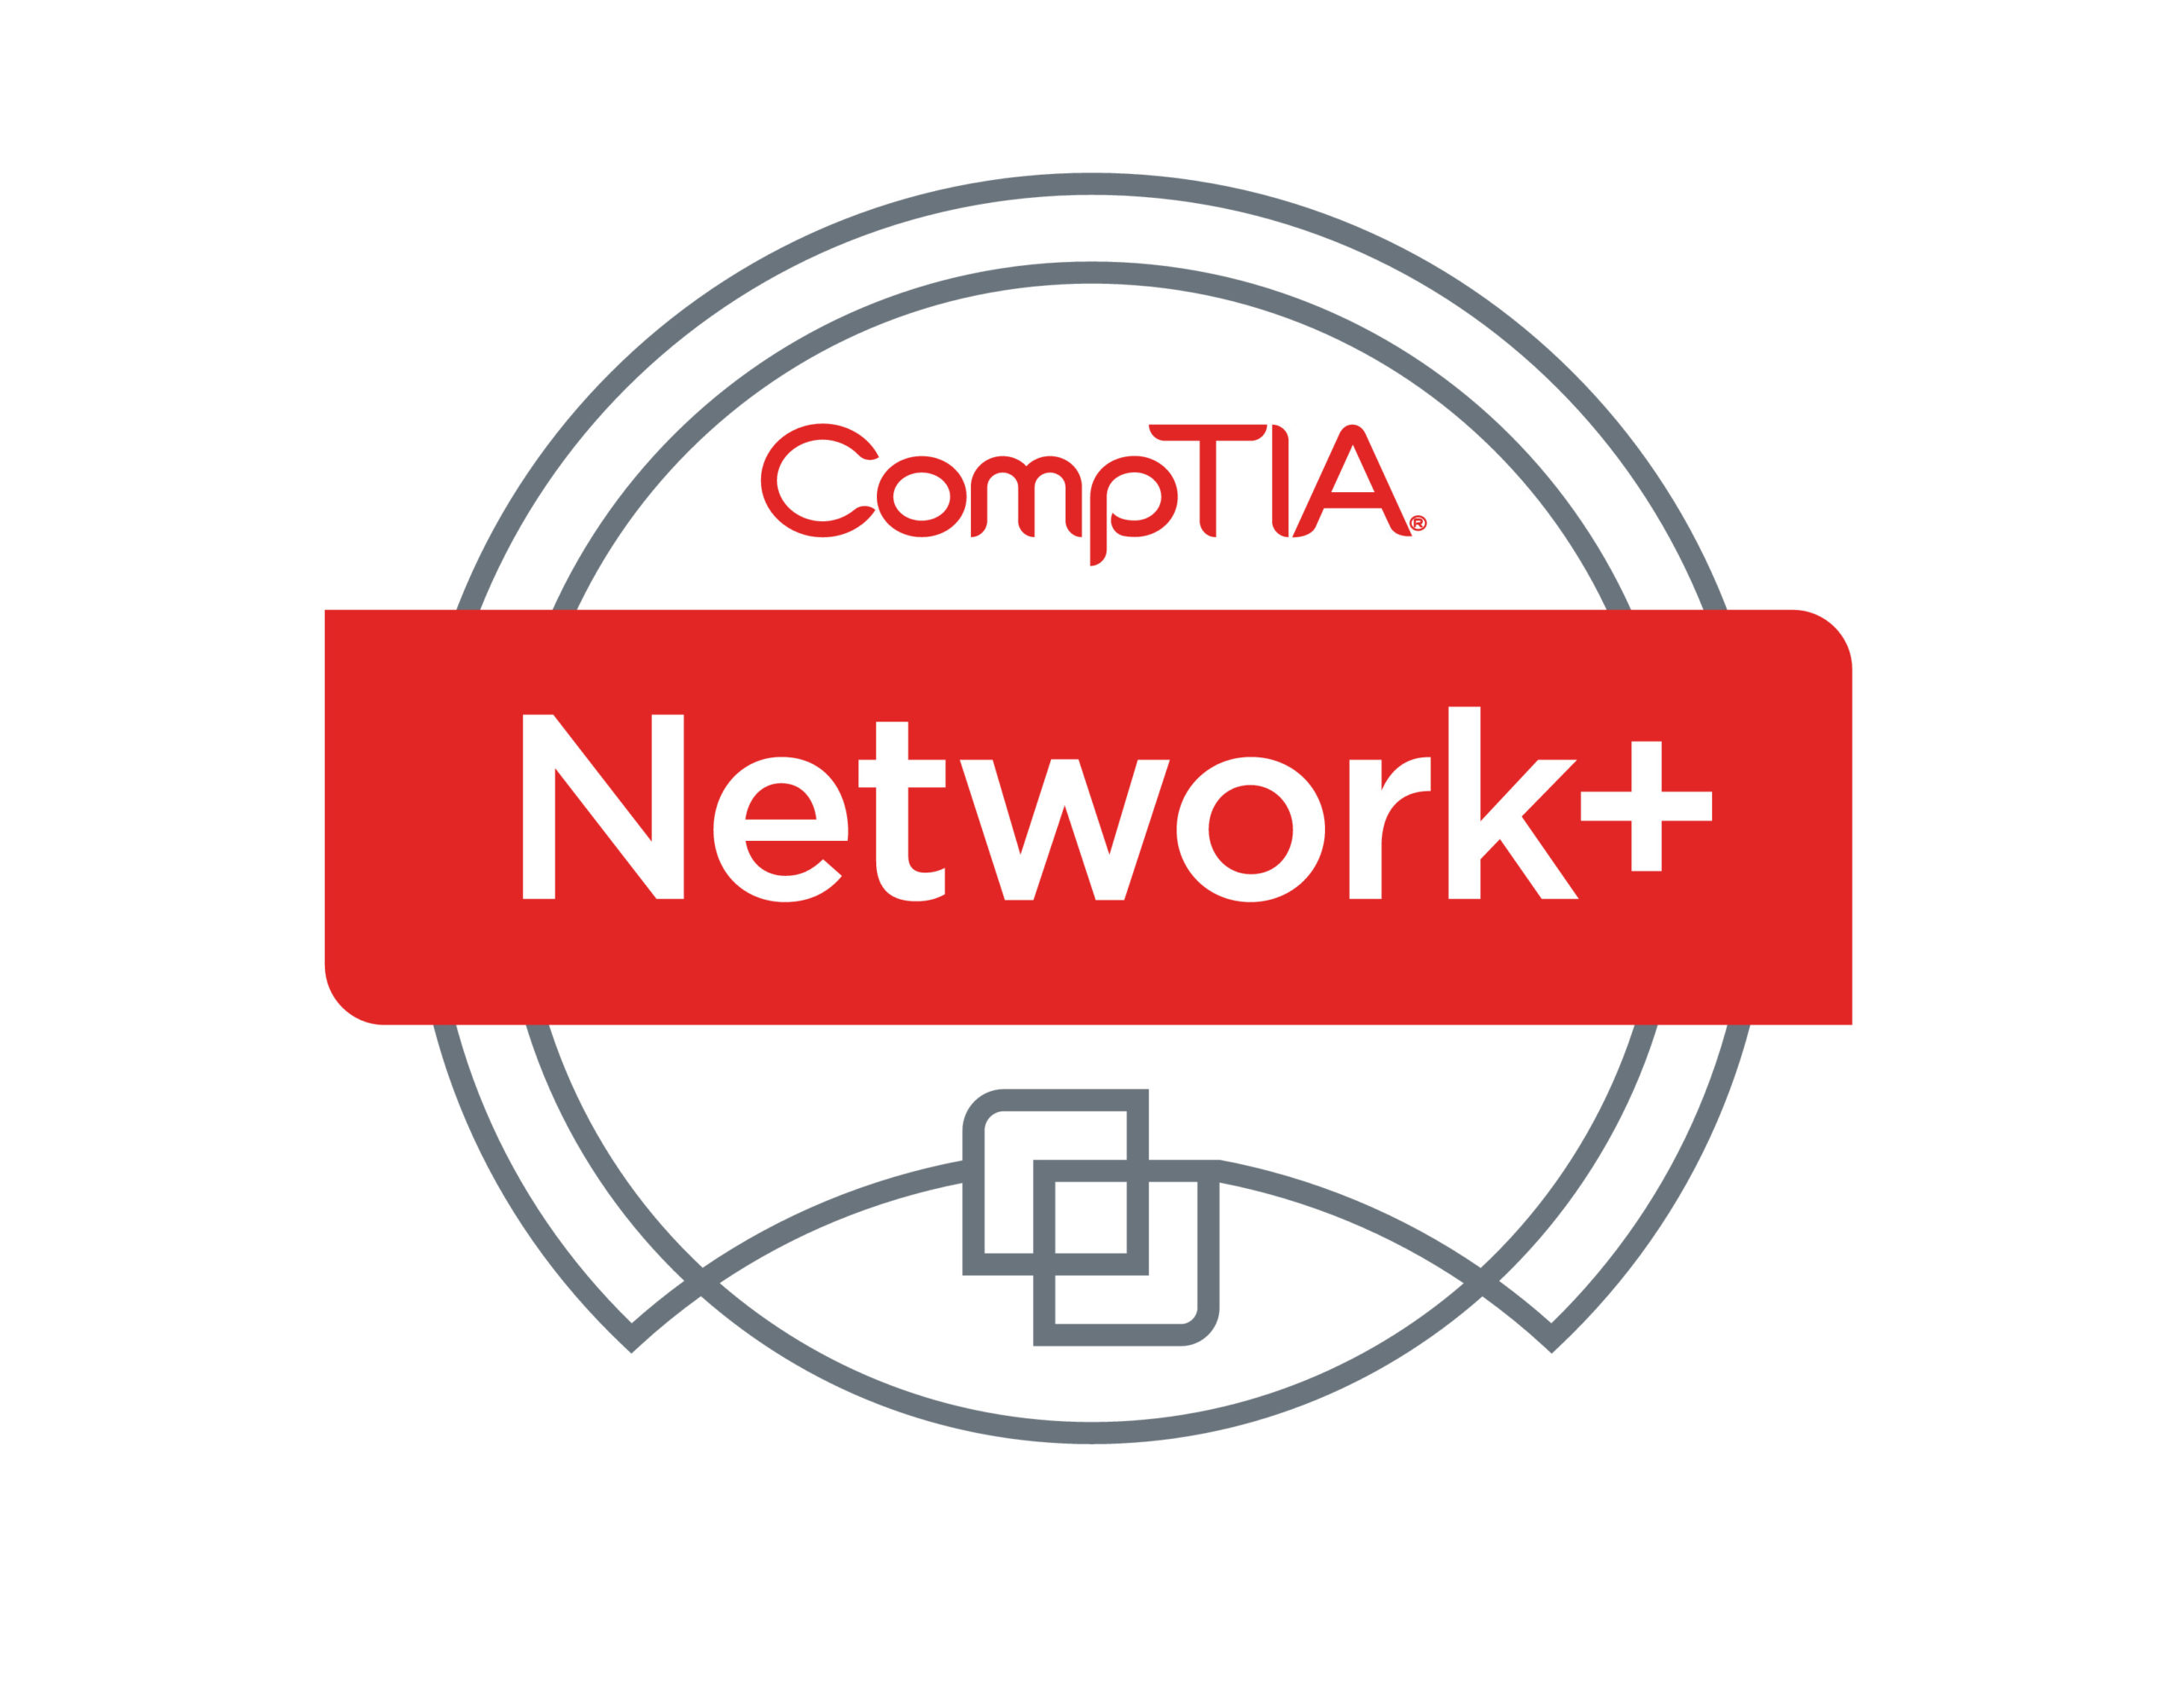 CompTIA Network+ Certification Training Boot Camp